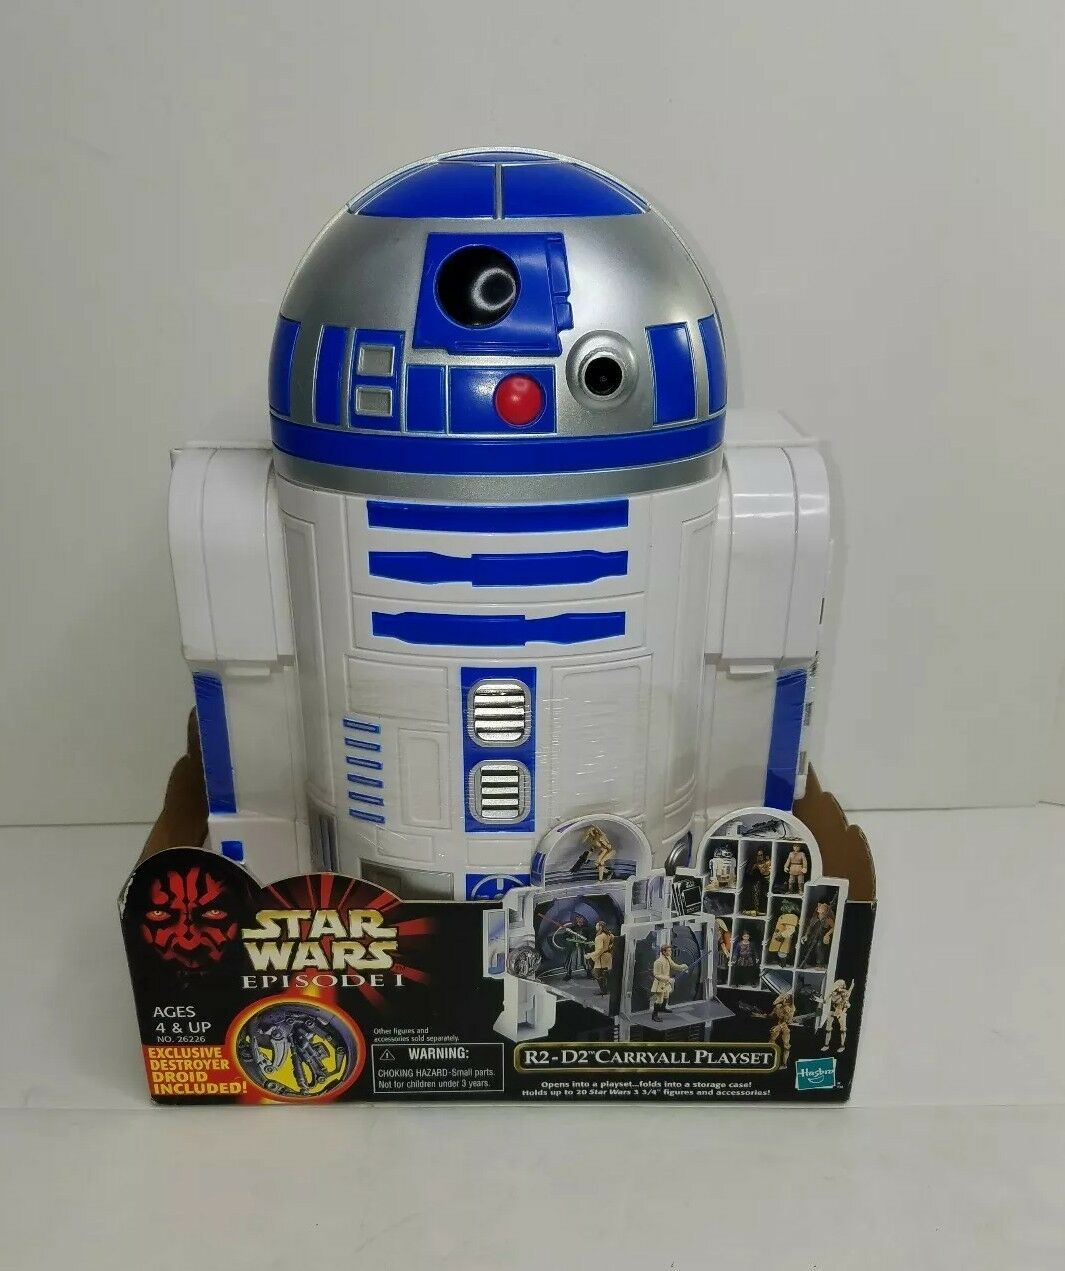 Star Wars 1999 Episode 1 R2-D2 CARRYALL PLAYSET w/ Exclusive Destroyer Droid NIB